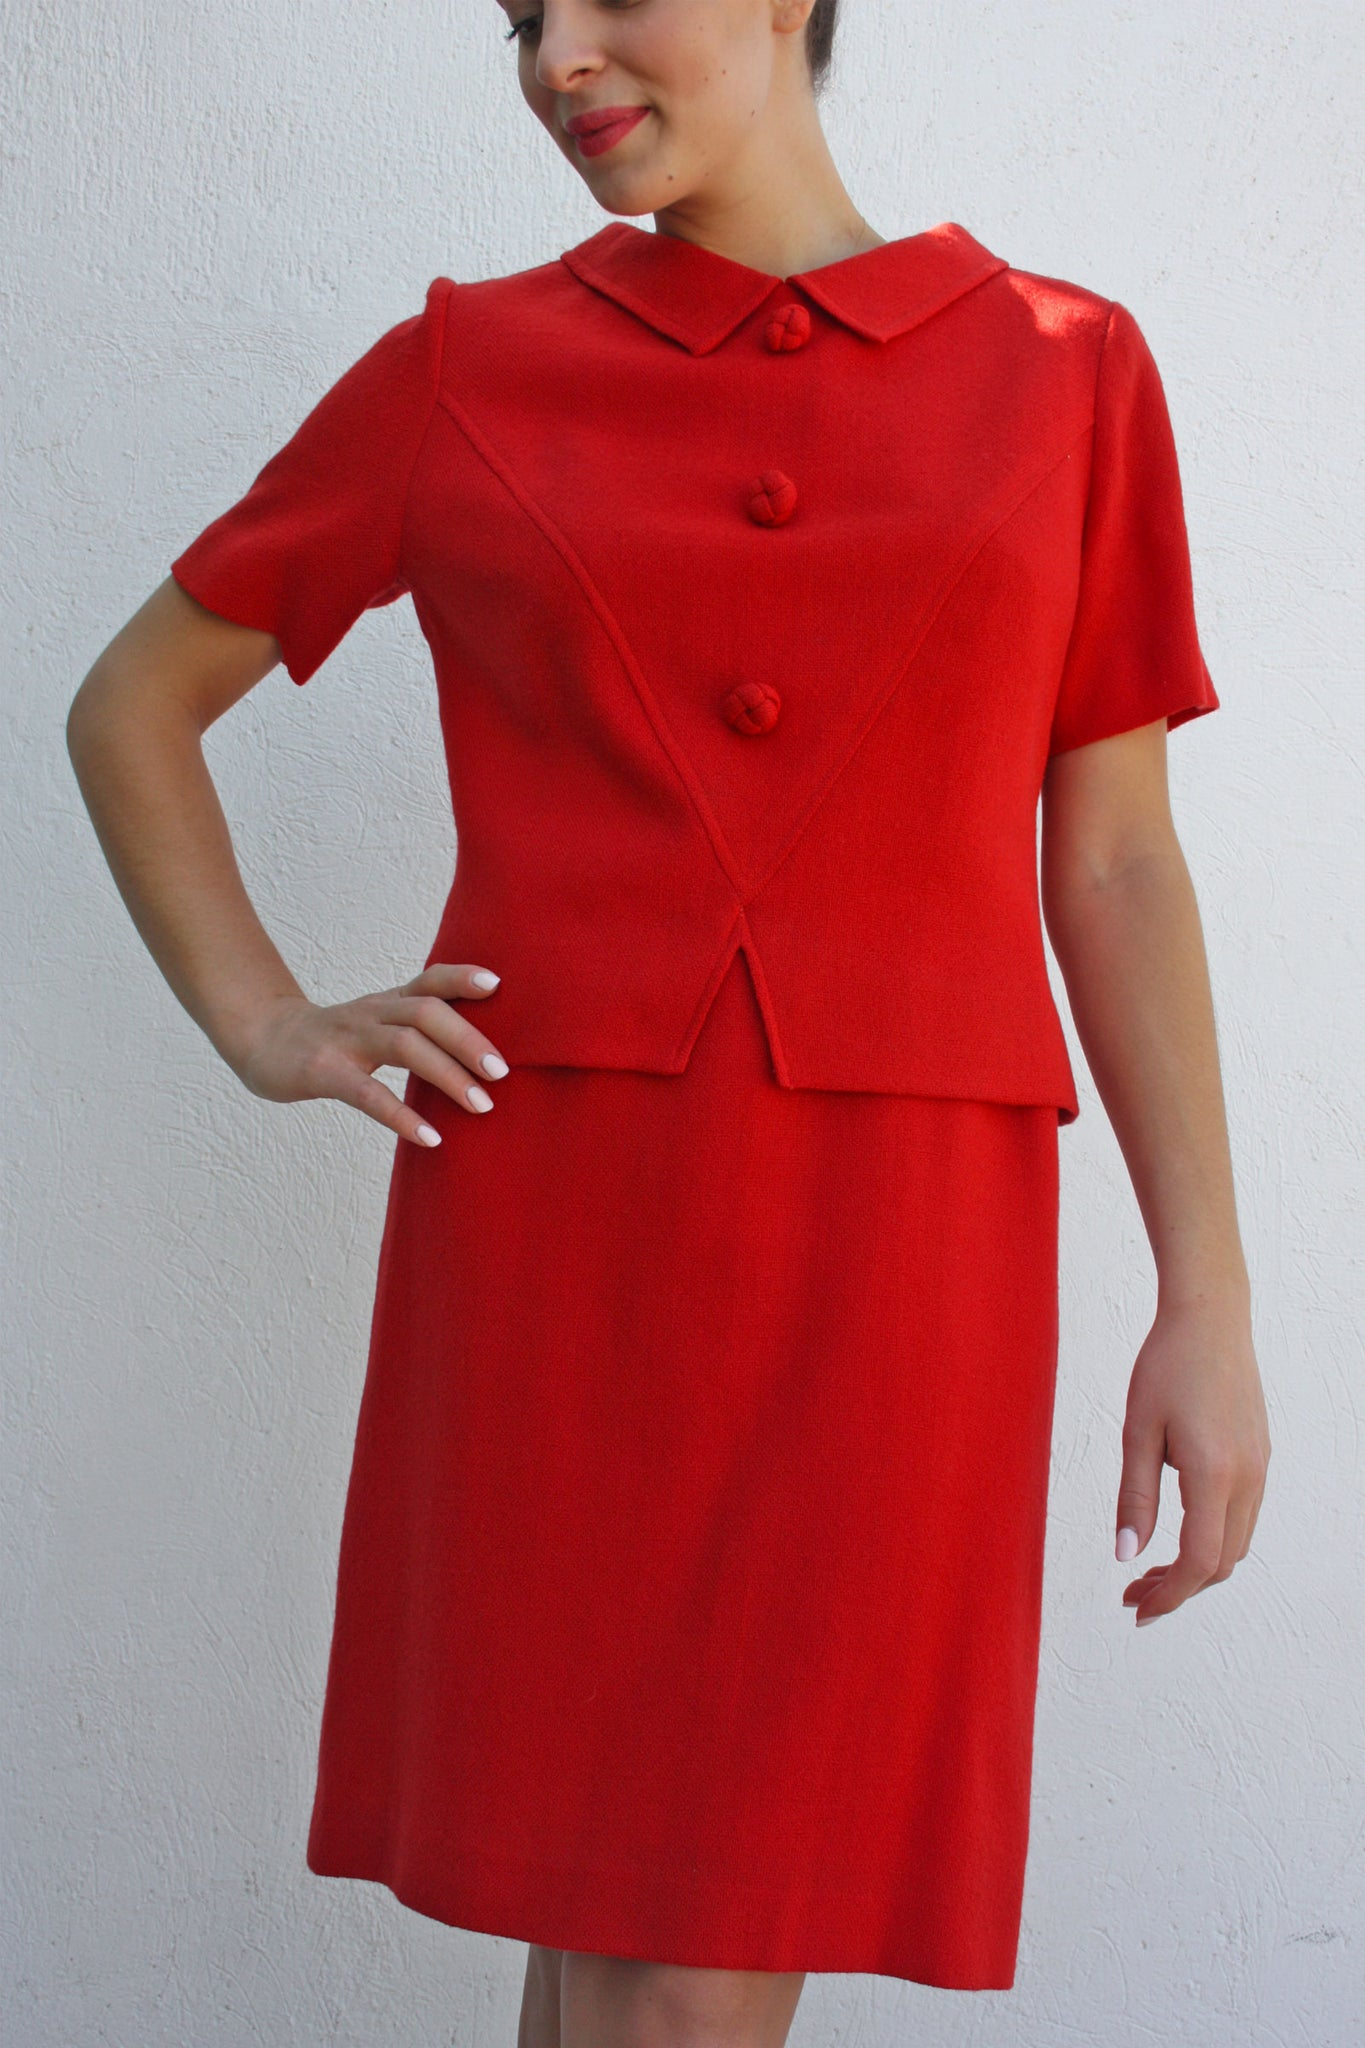 Vintage wool red suit - Shop SoLovesVintage